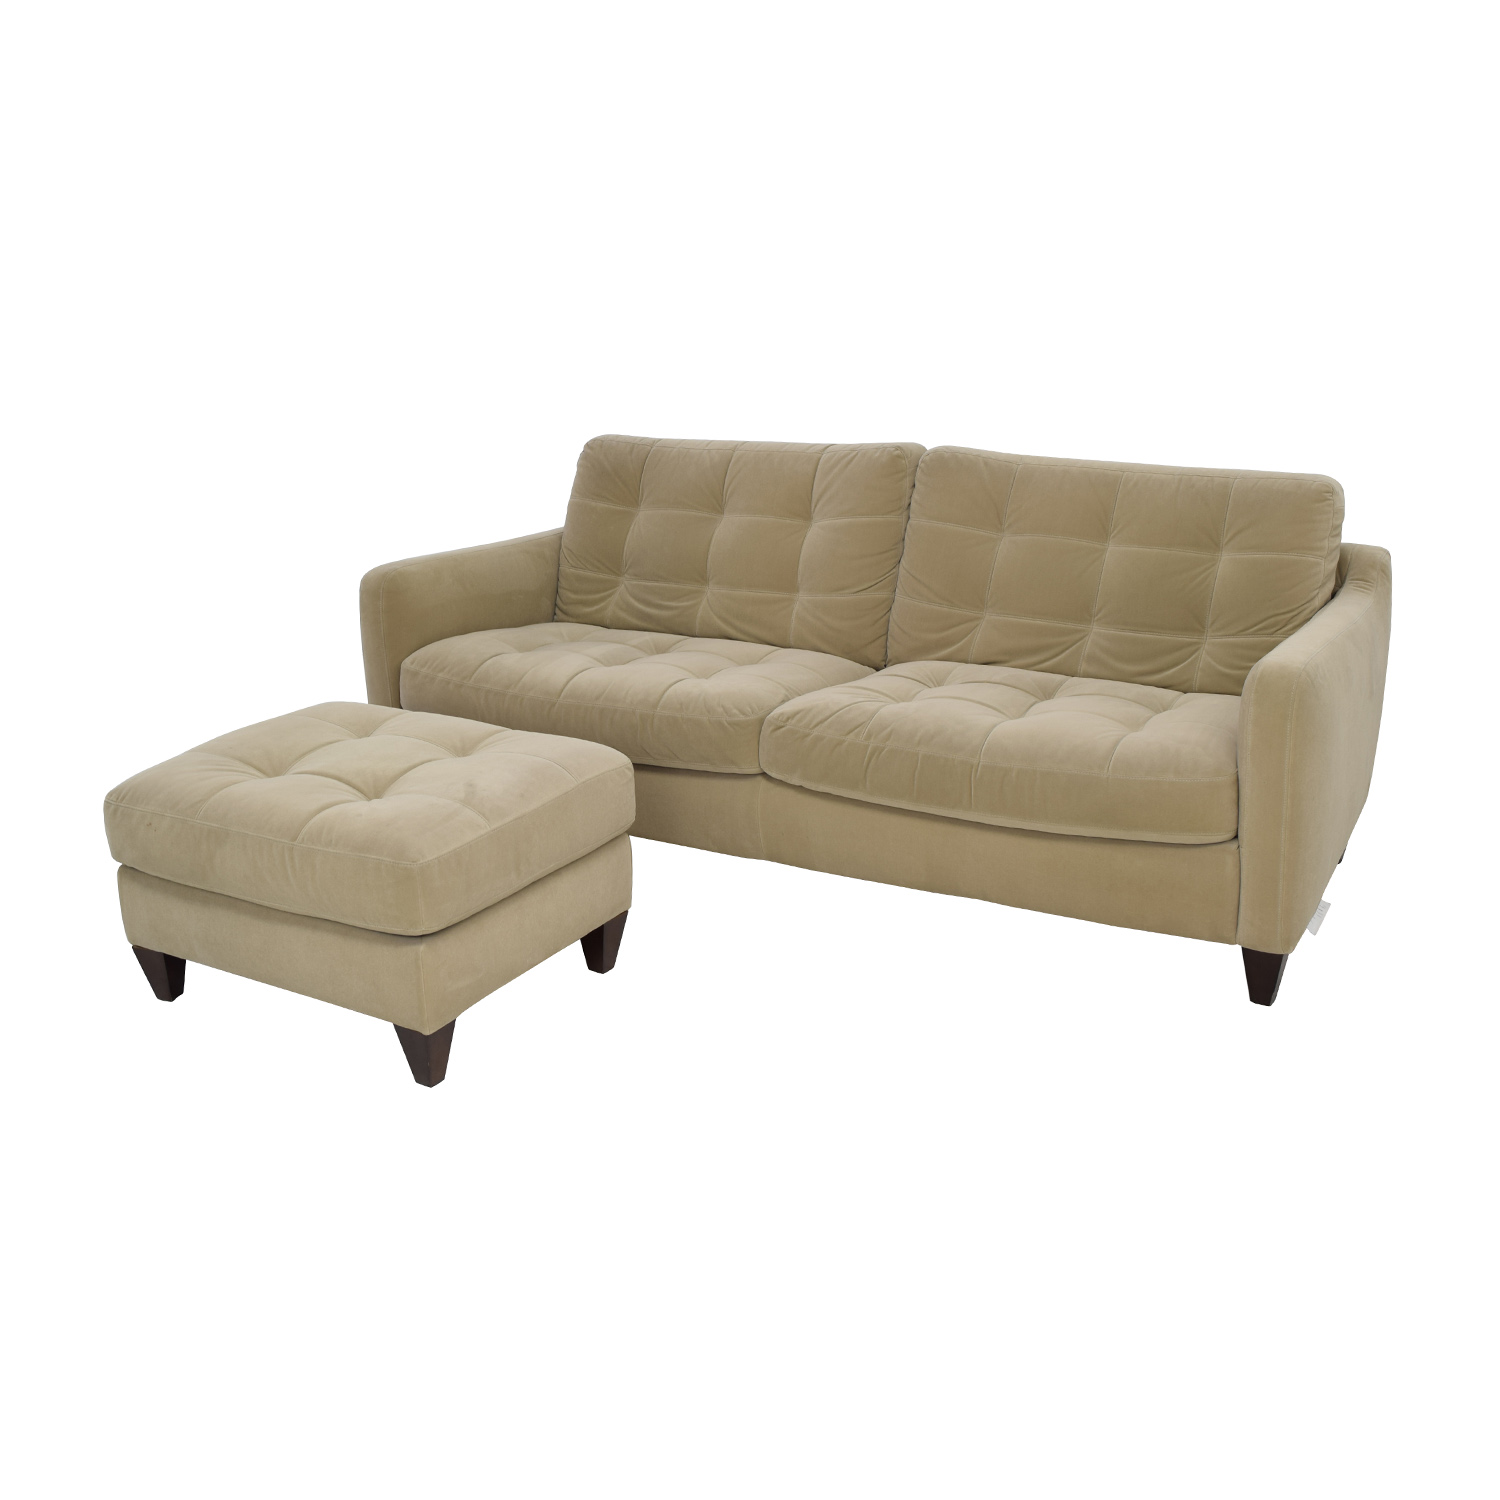 80 off natuzzi natuzzi beige microfiber tufted couch for Couch und sofa